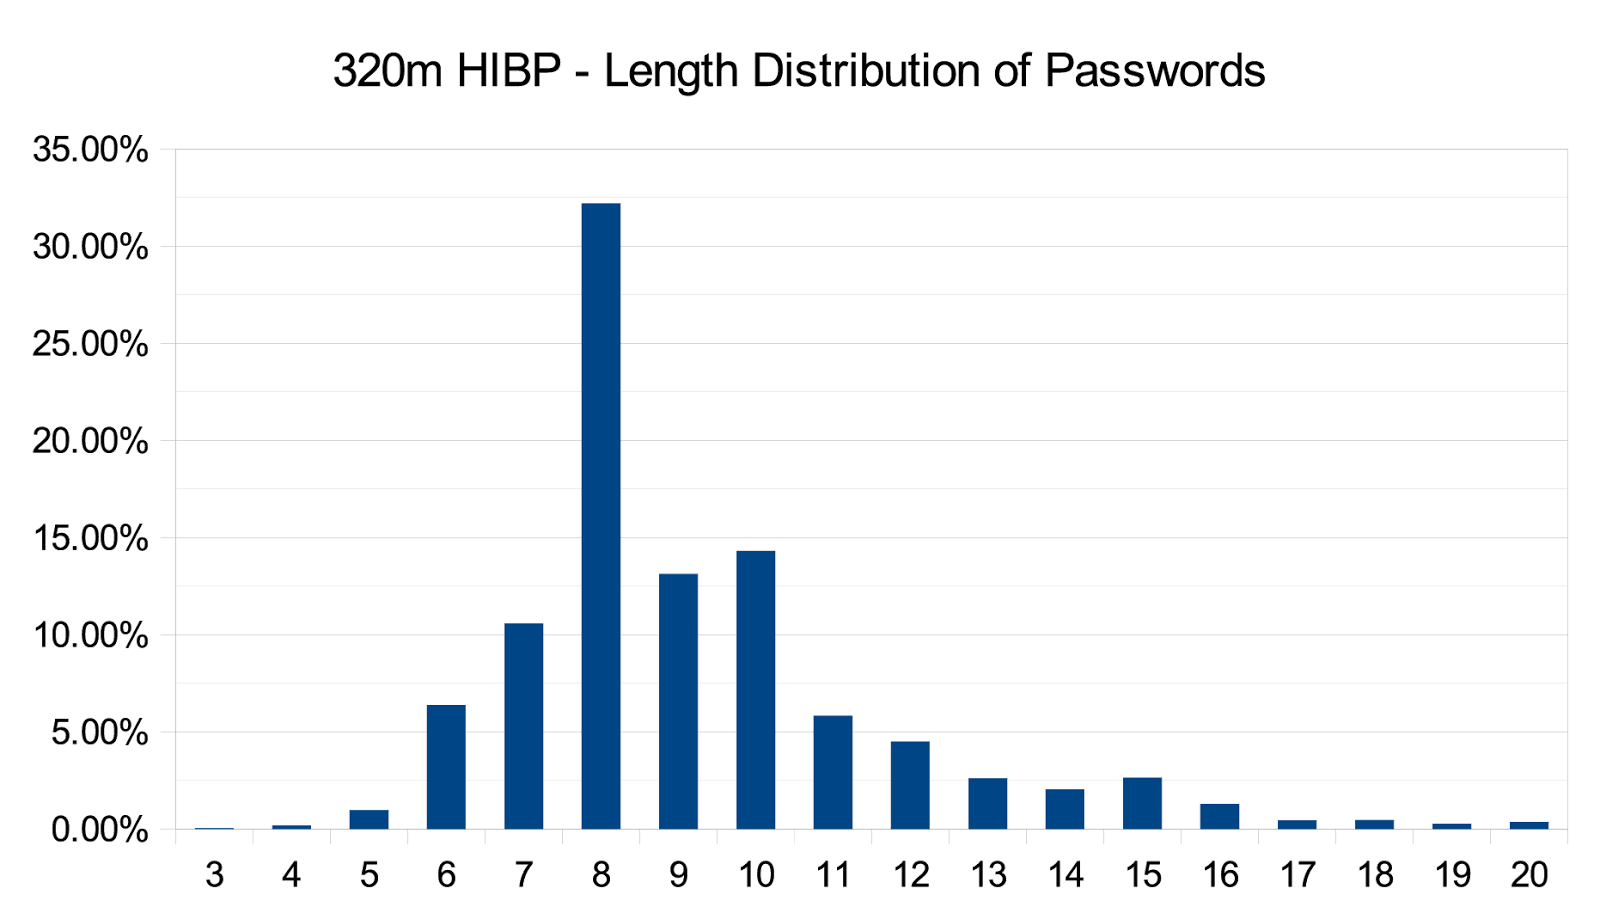 CryptoSure-Prime hashed passwords